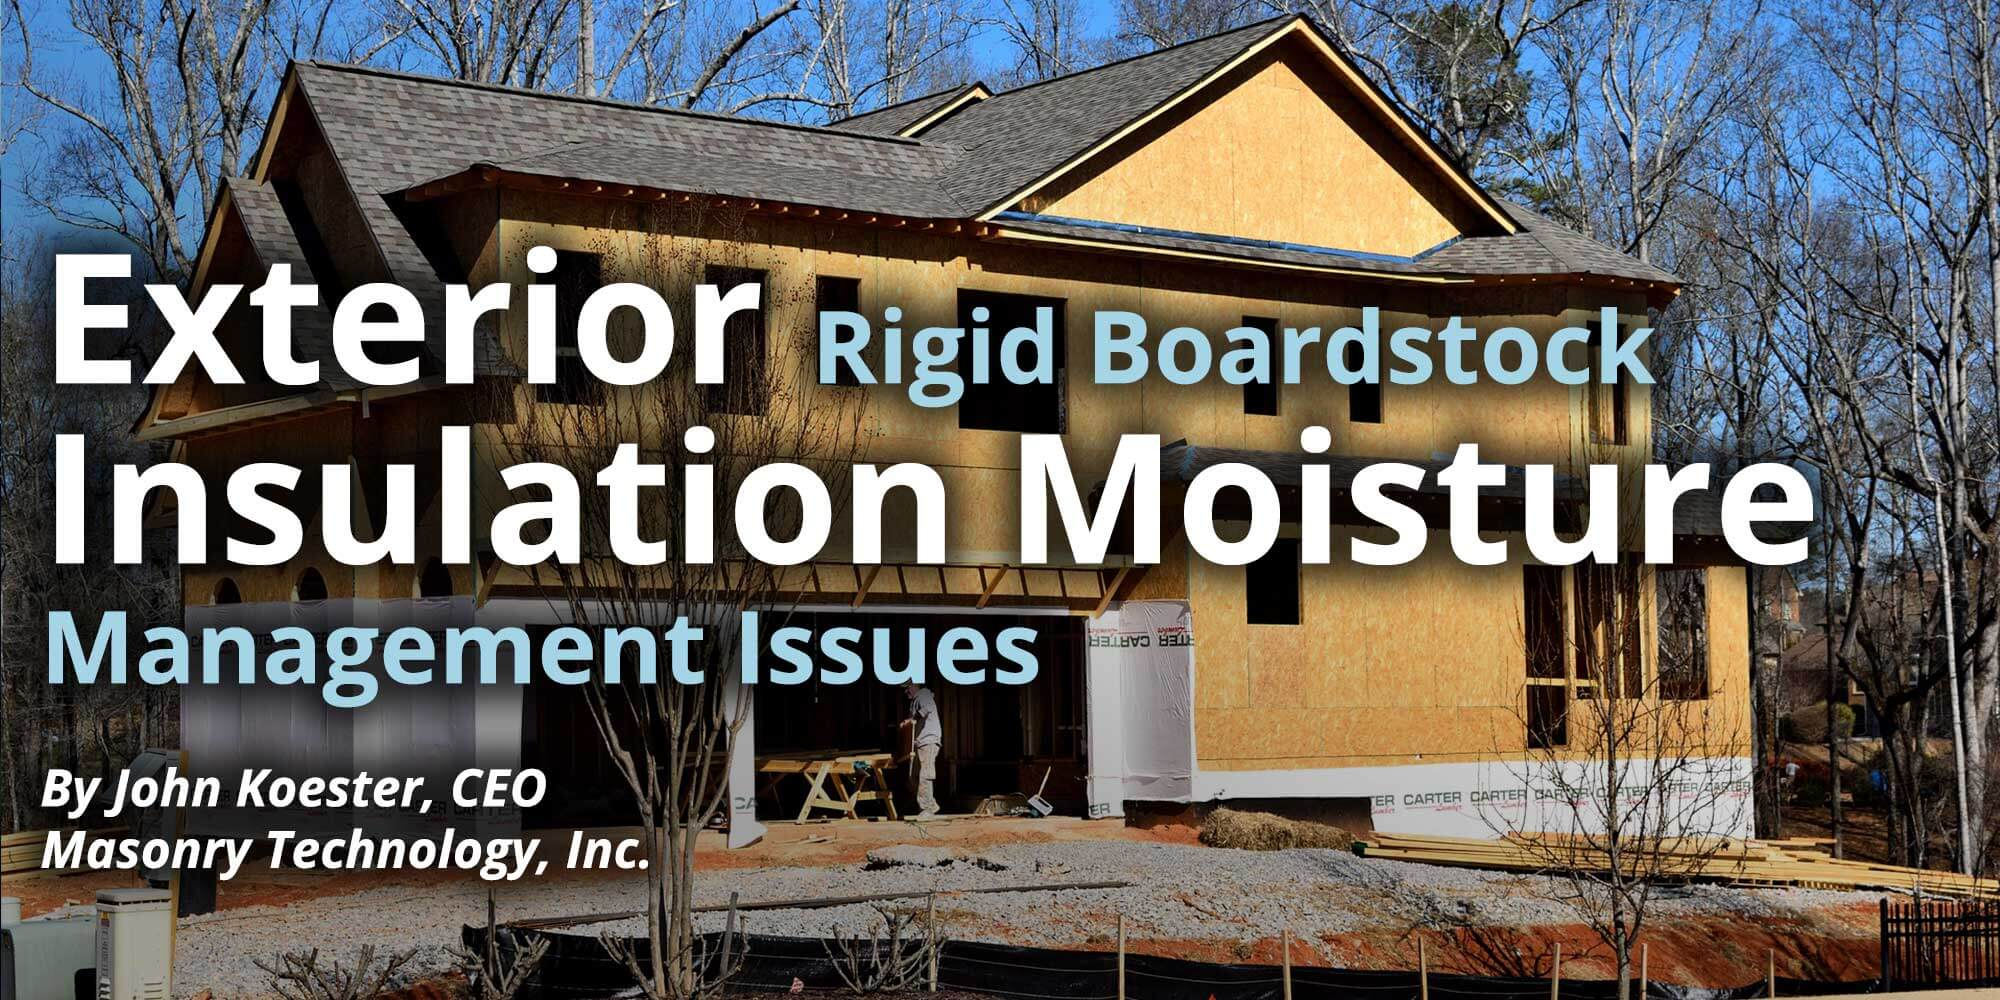 Exterior Rigid Boardstock Insulation Moisture Management Issues